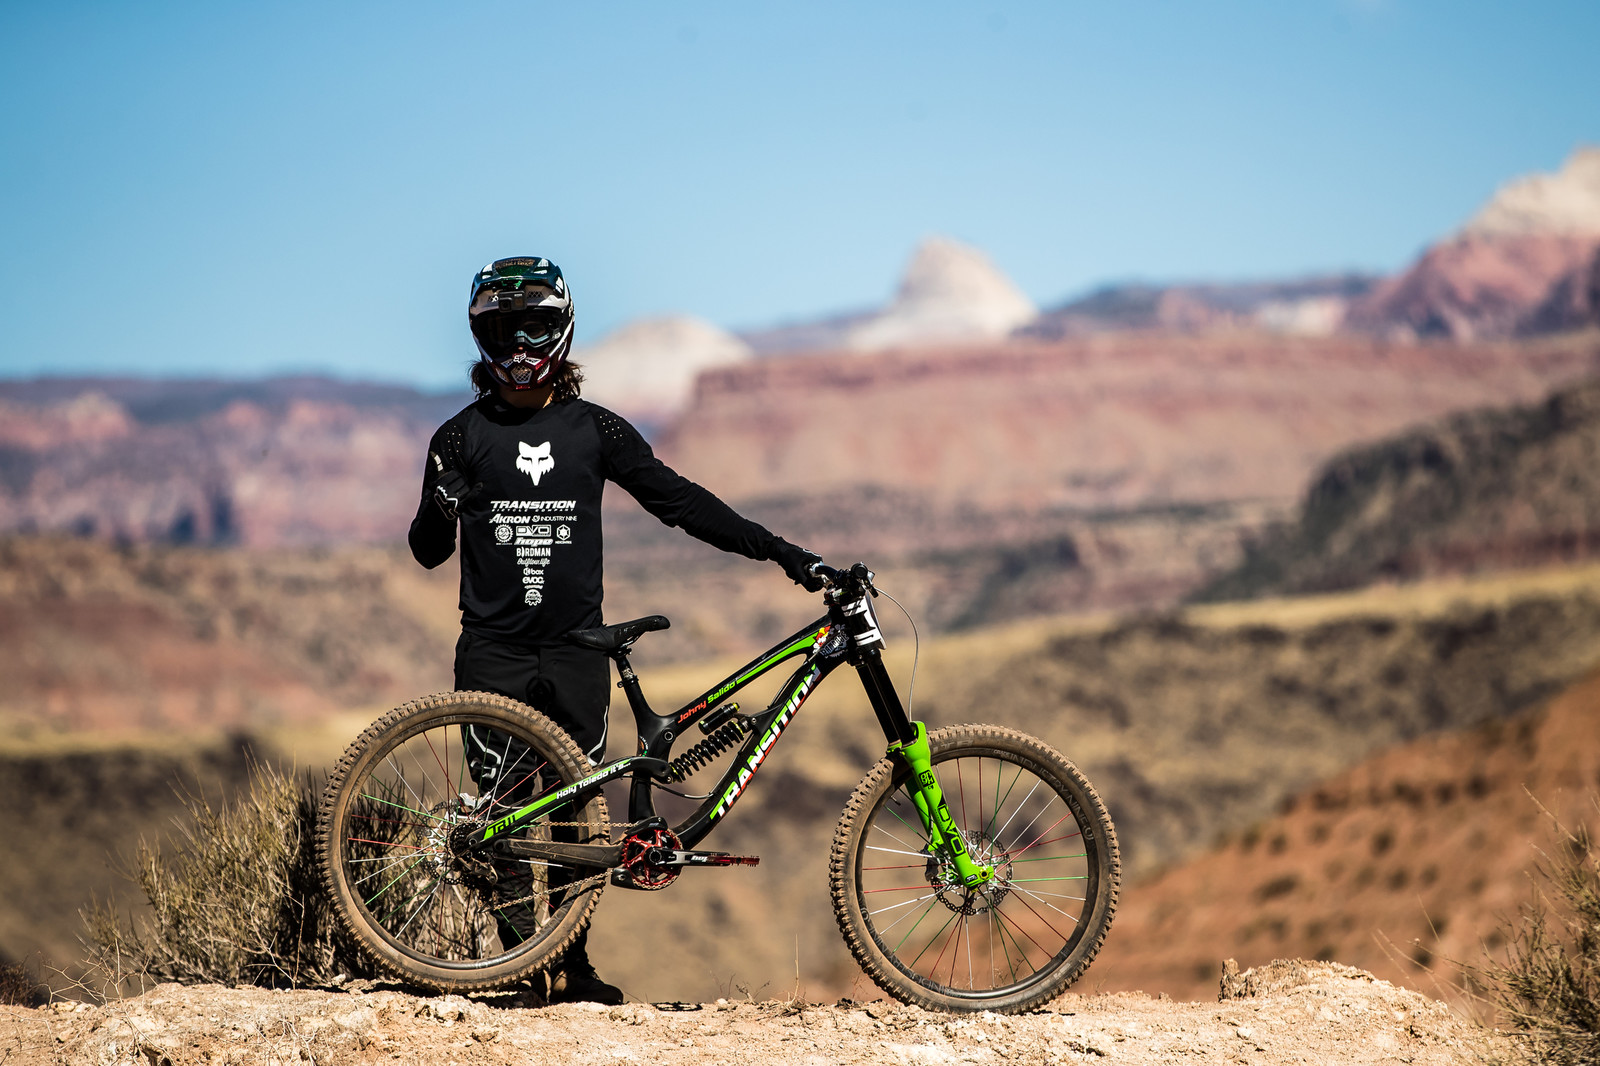 Johny and His Sick Steed - RAMPAGE BIKE - Juan Diego Salido's Transition TR11 - Mountain Biking Pictures - Vital MTB